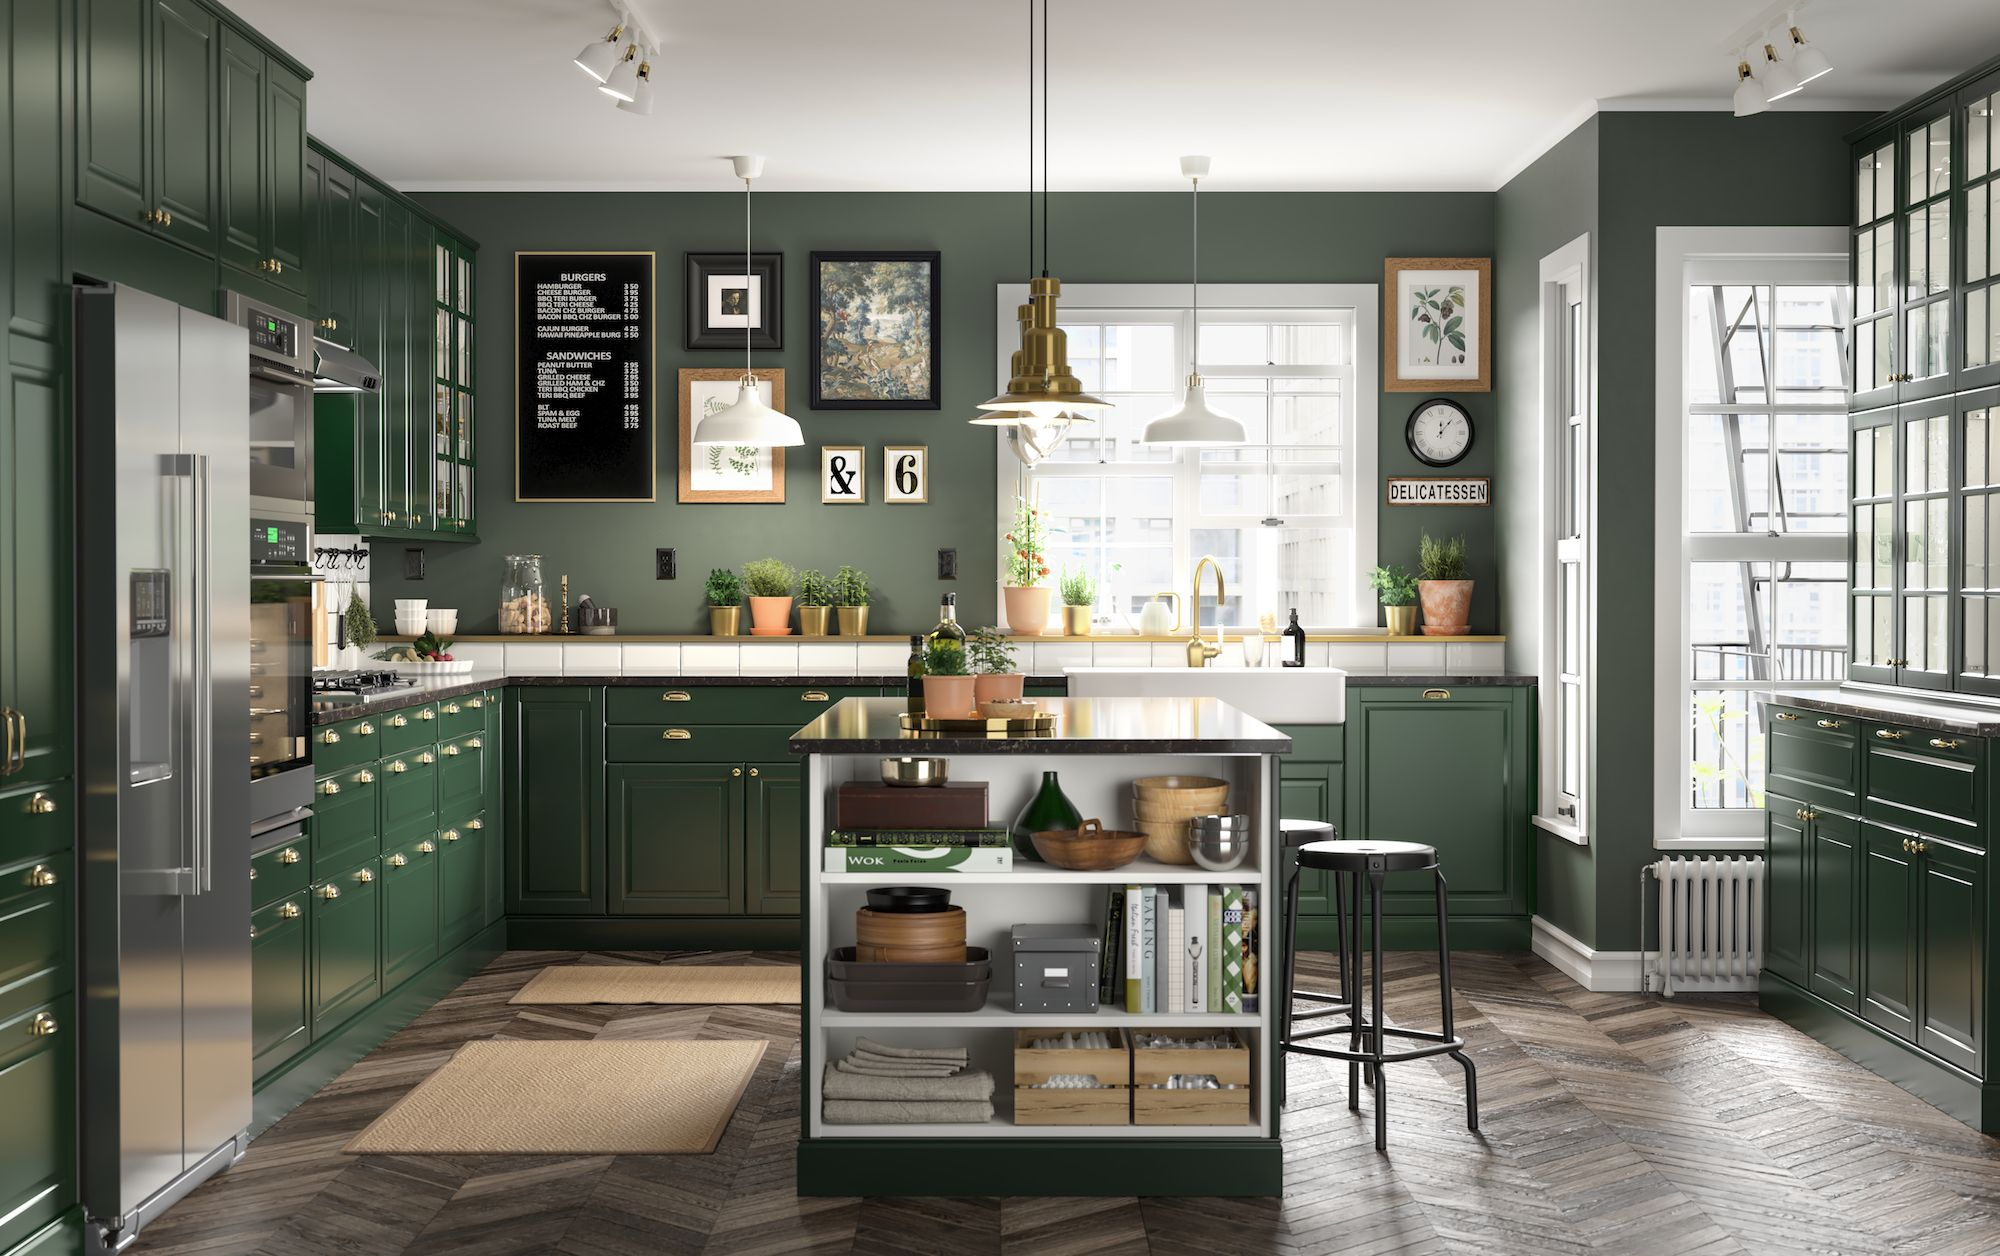 Points That Will Help You To Shortlist The Kitchen Design-build Services